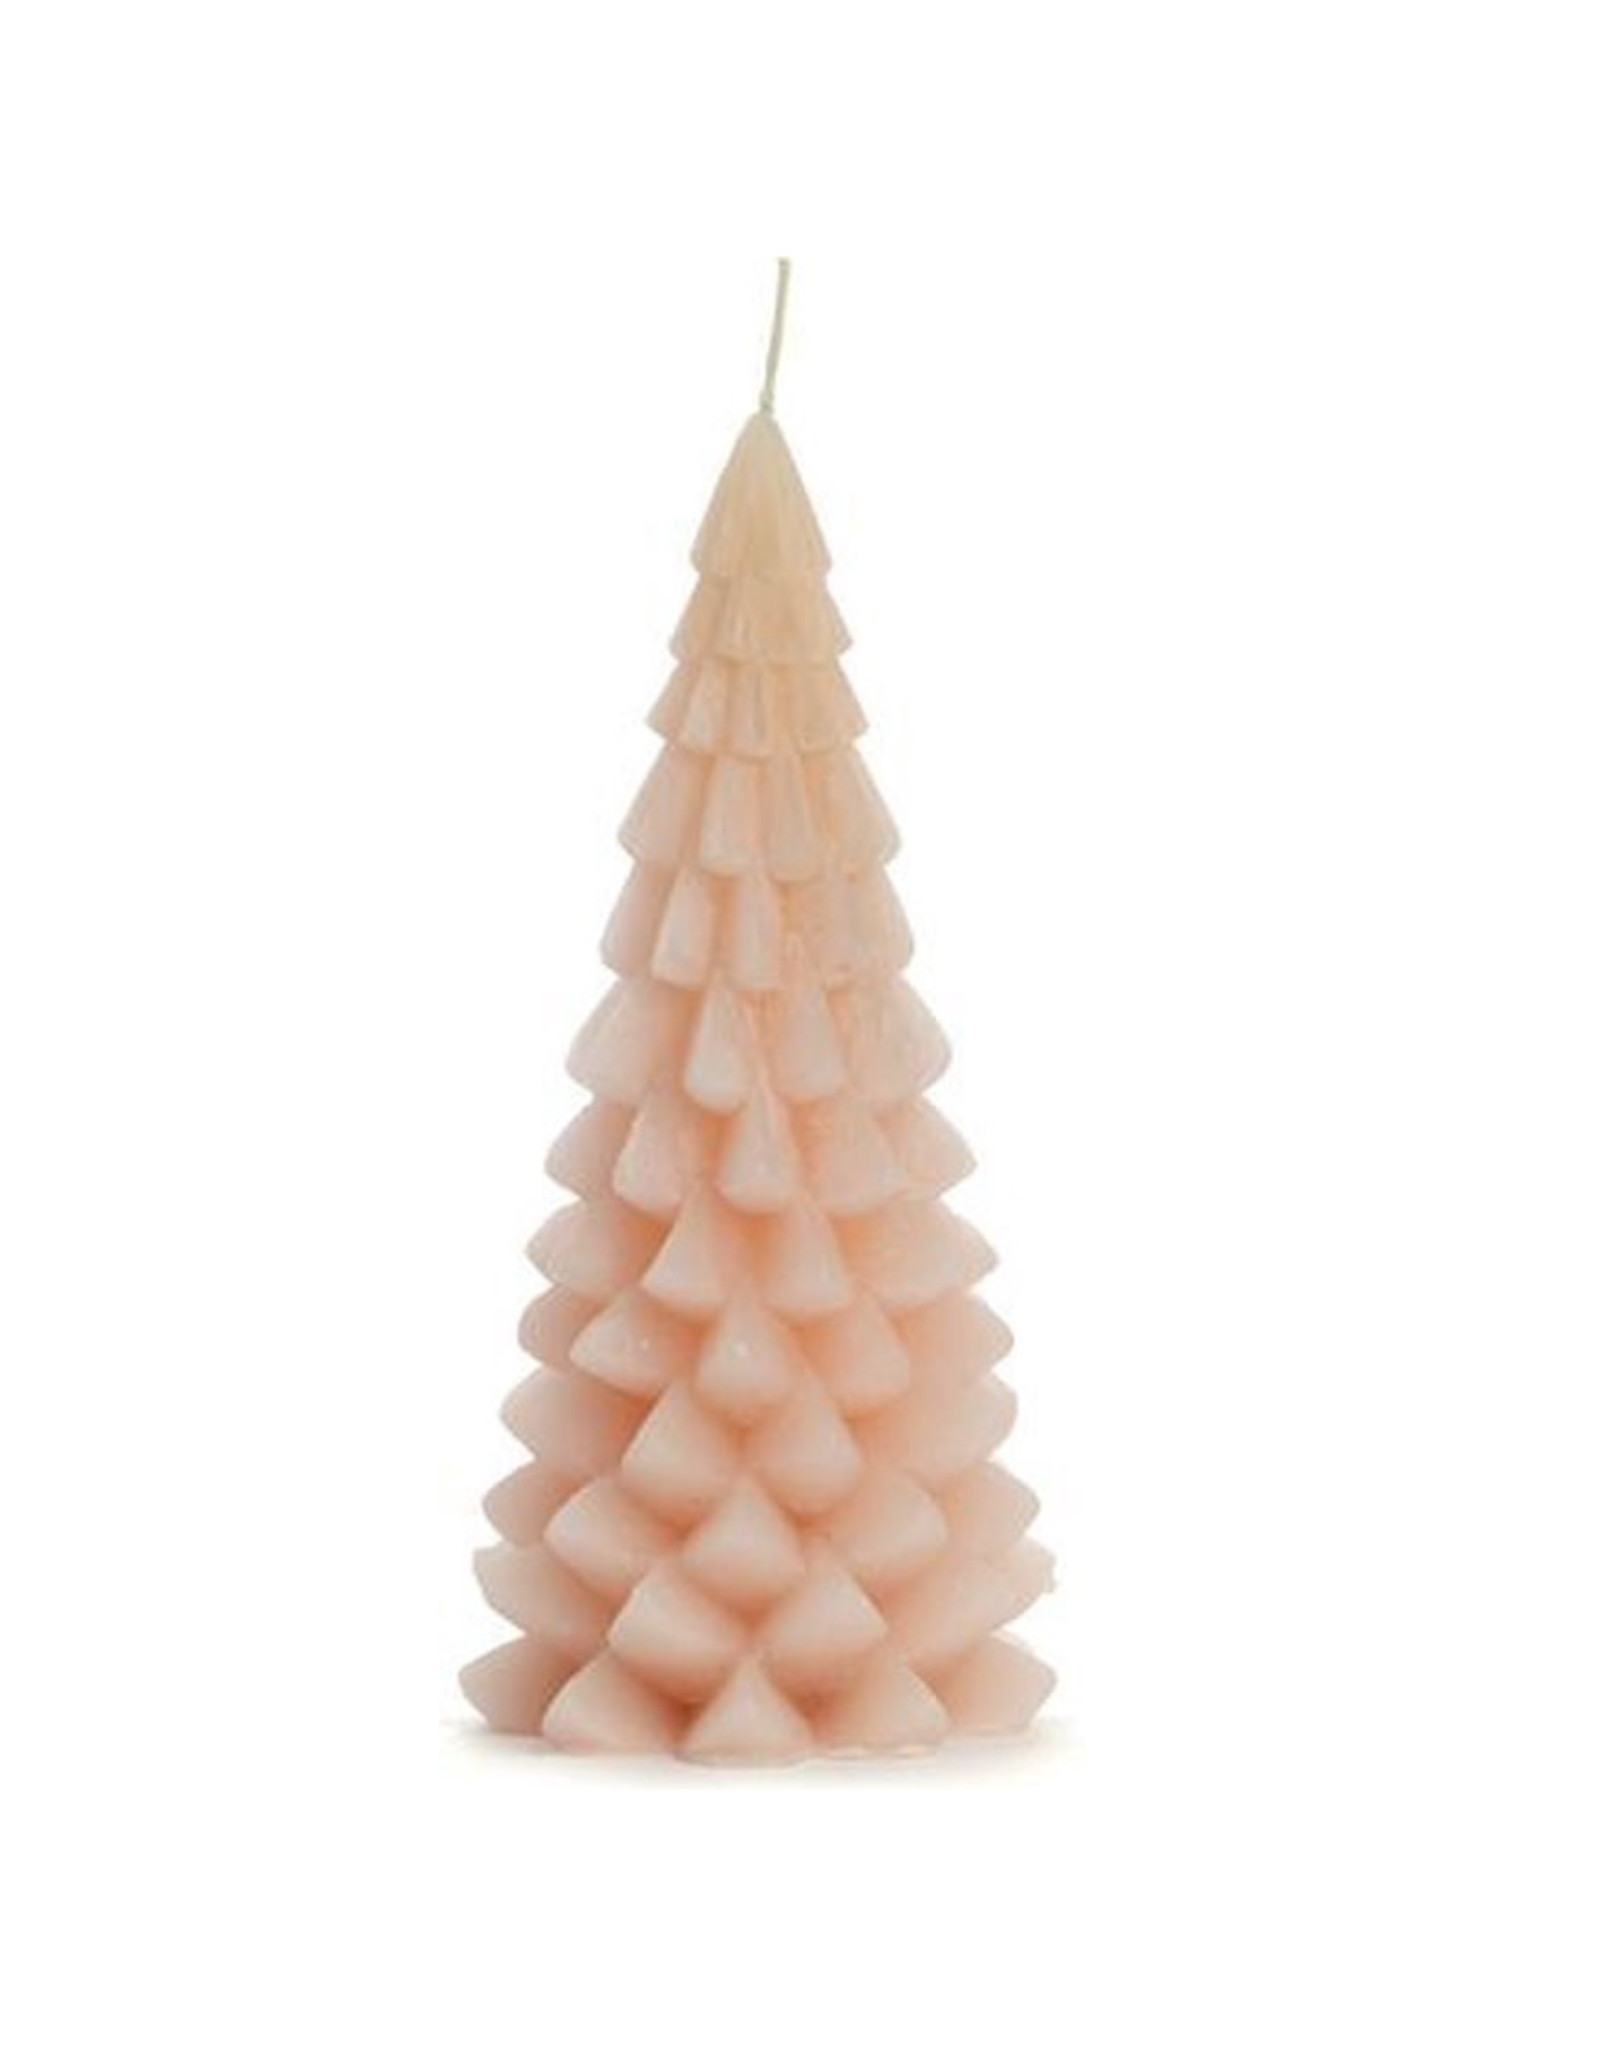 Rustik Lys Christmas tree candle  - Blossom - 10 x 20 cm - Burning time +/- 42h